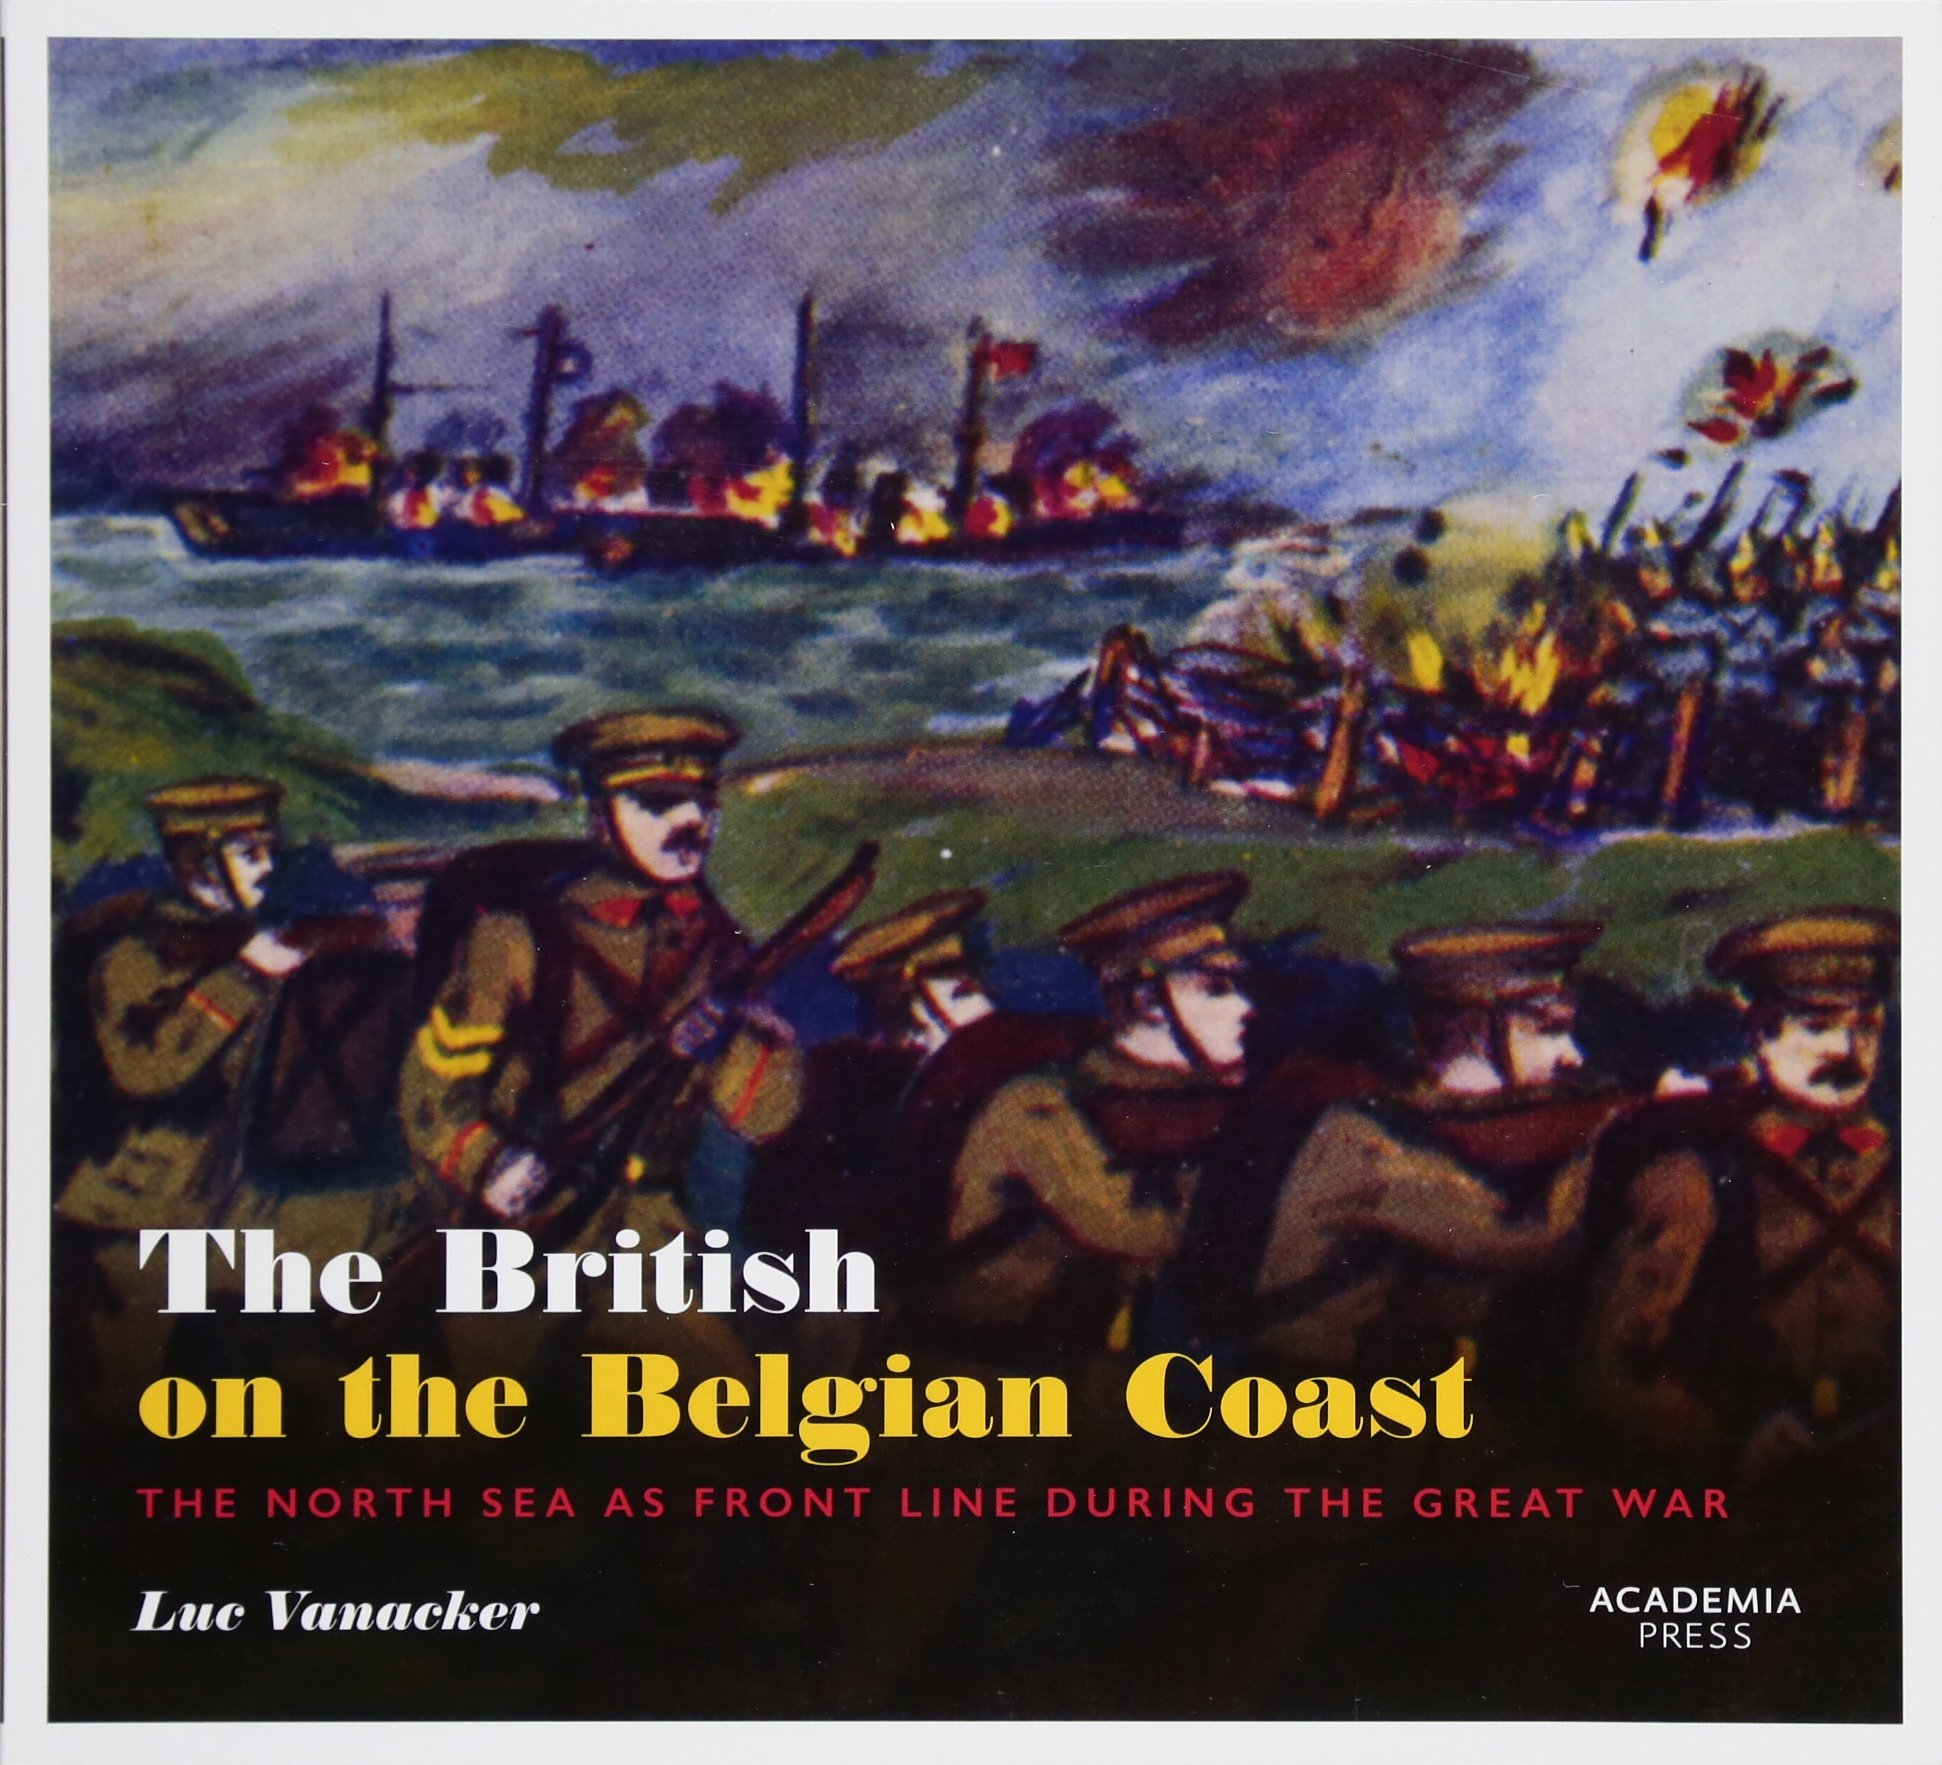 The British on the Belgian Coast: The North Sea as Front Line during the Great War PDF